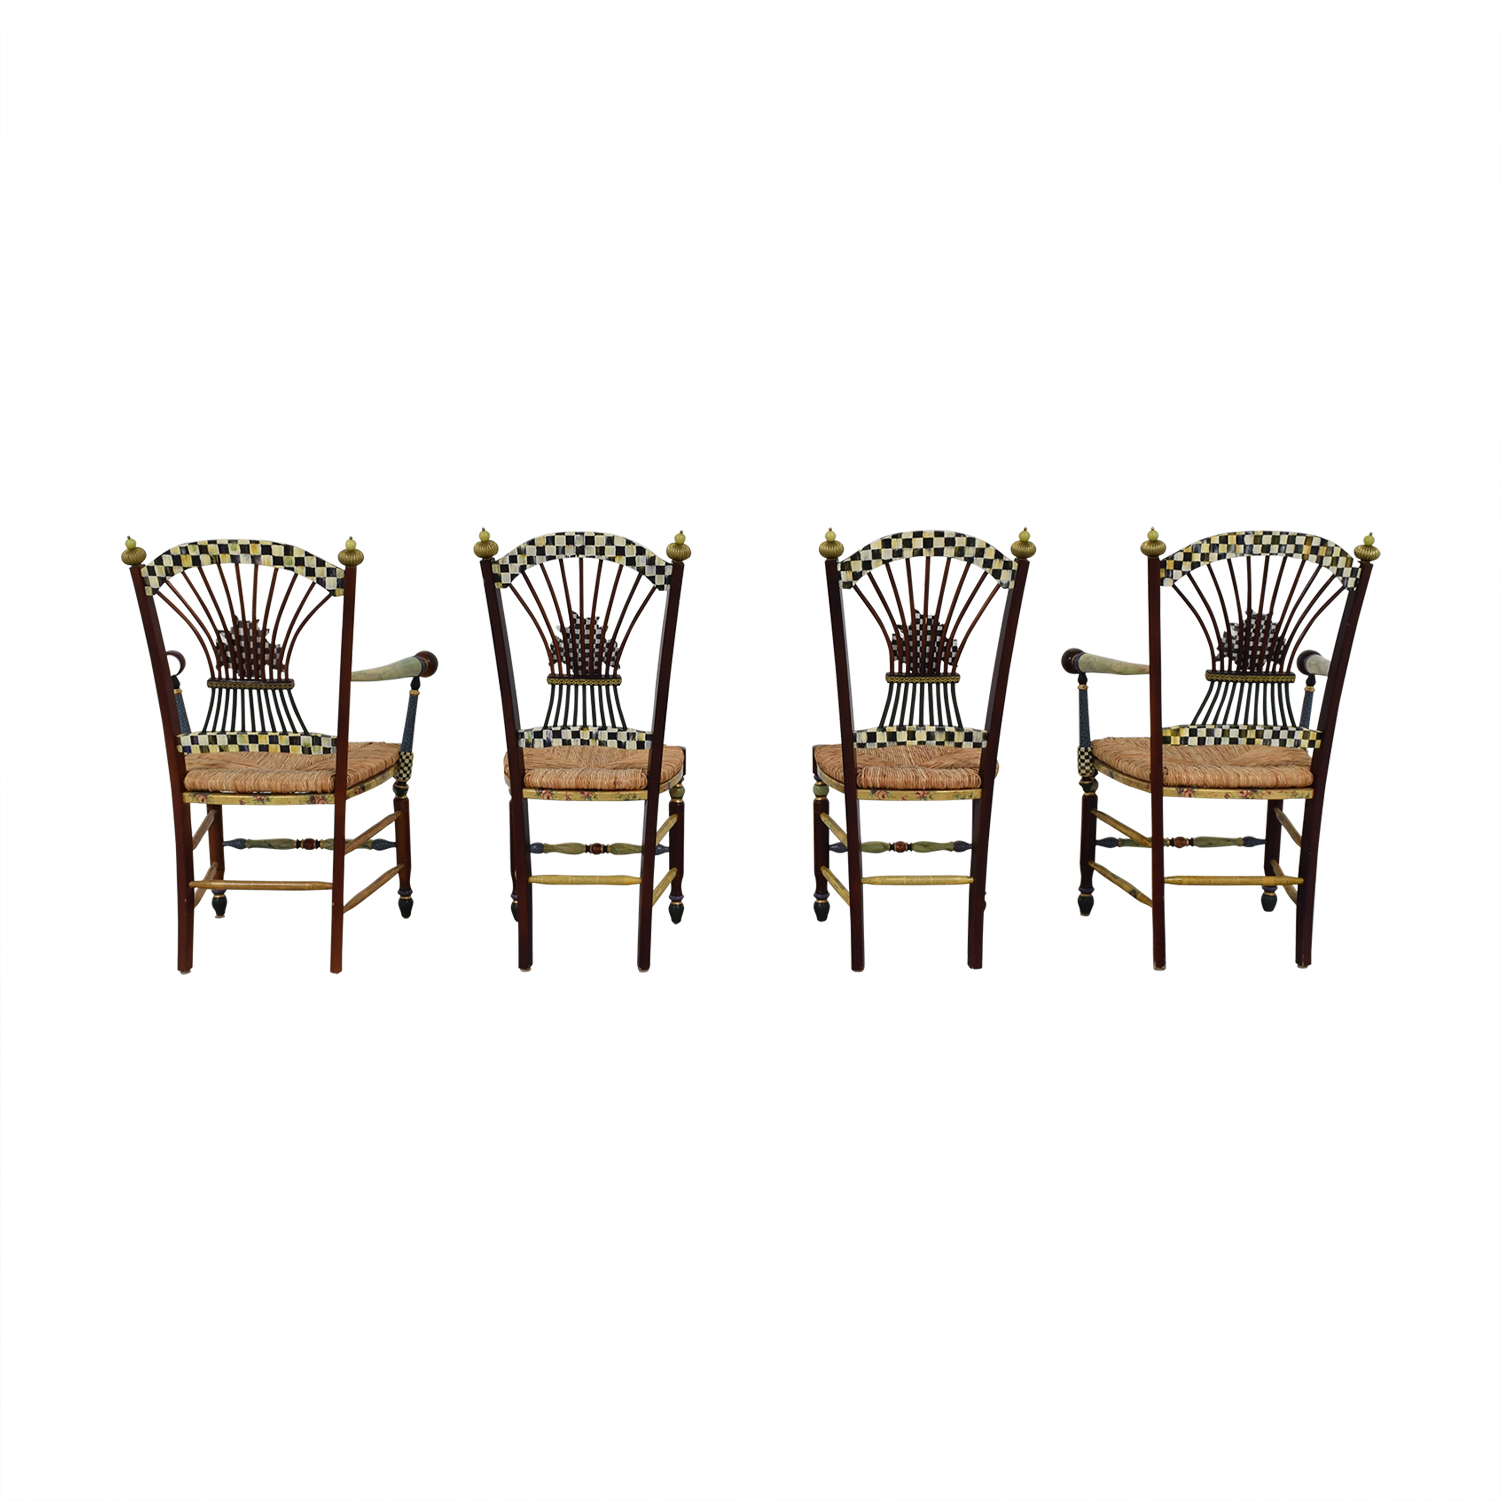 Superb 83 Off Mackenzie Childs Mackenzie Childs Multi Colored Wicker Dining Chairs Chairs Beatyapartments Chair Design Images Beatyapartmentscom